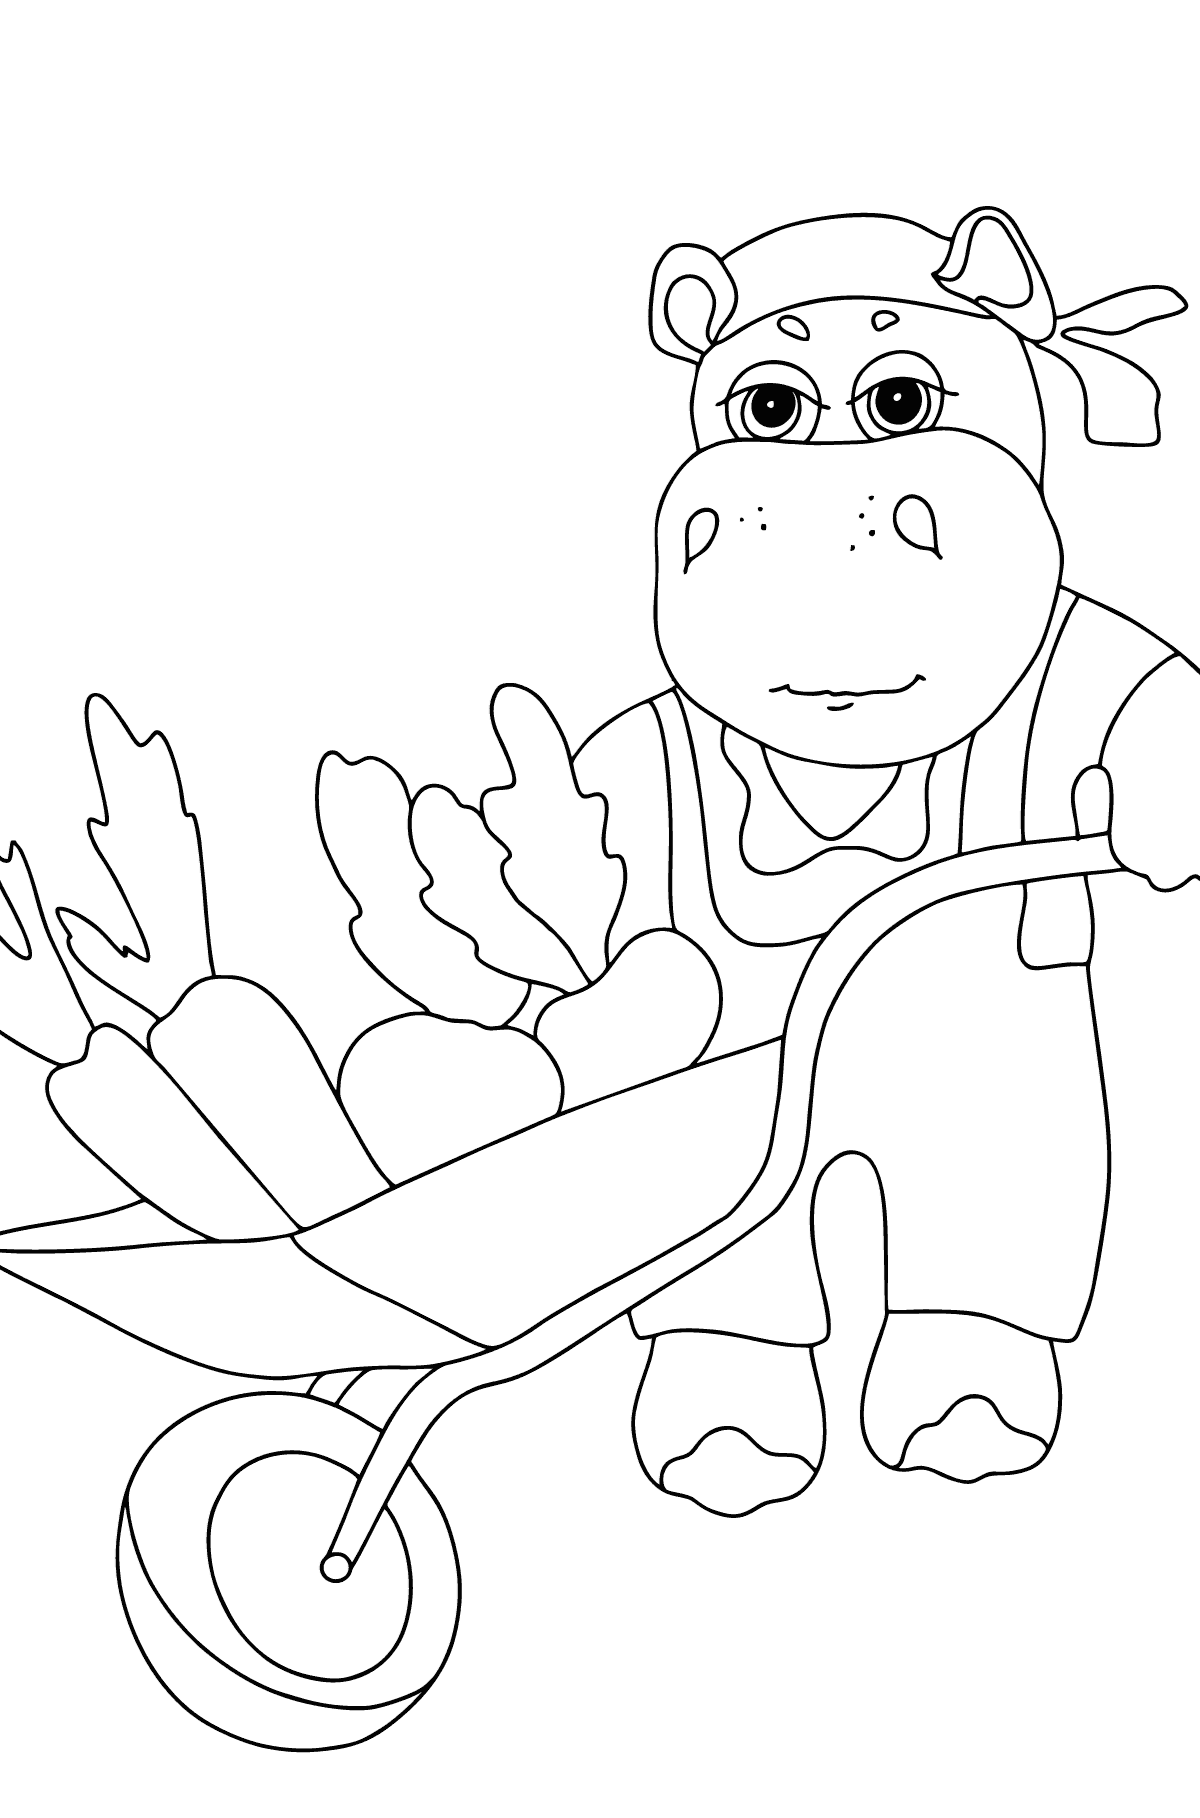 Coloring Page - A Hippo with a Cart for Kids